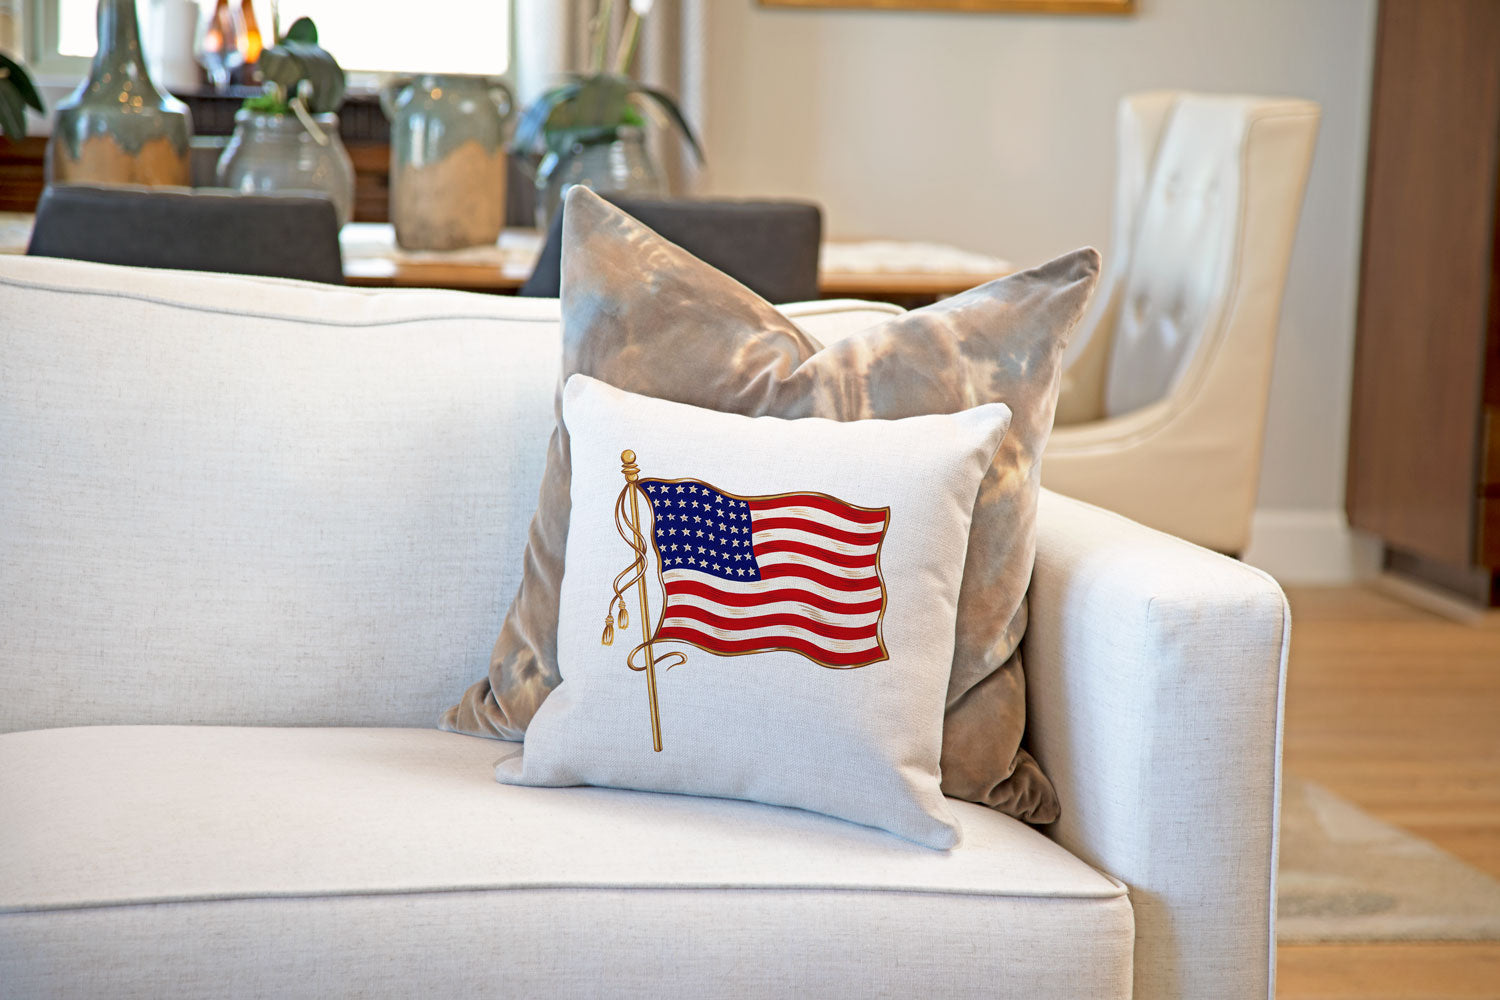 Vintage American Flag 48 Stars Throw Pillow Cover - Decorative Designs Throw Pillow Cover Collection-Di Lewis